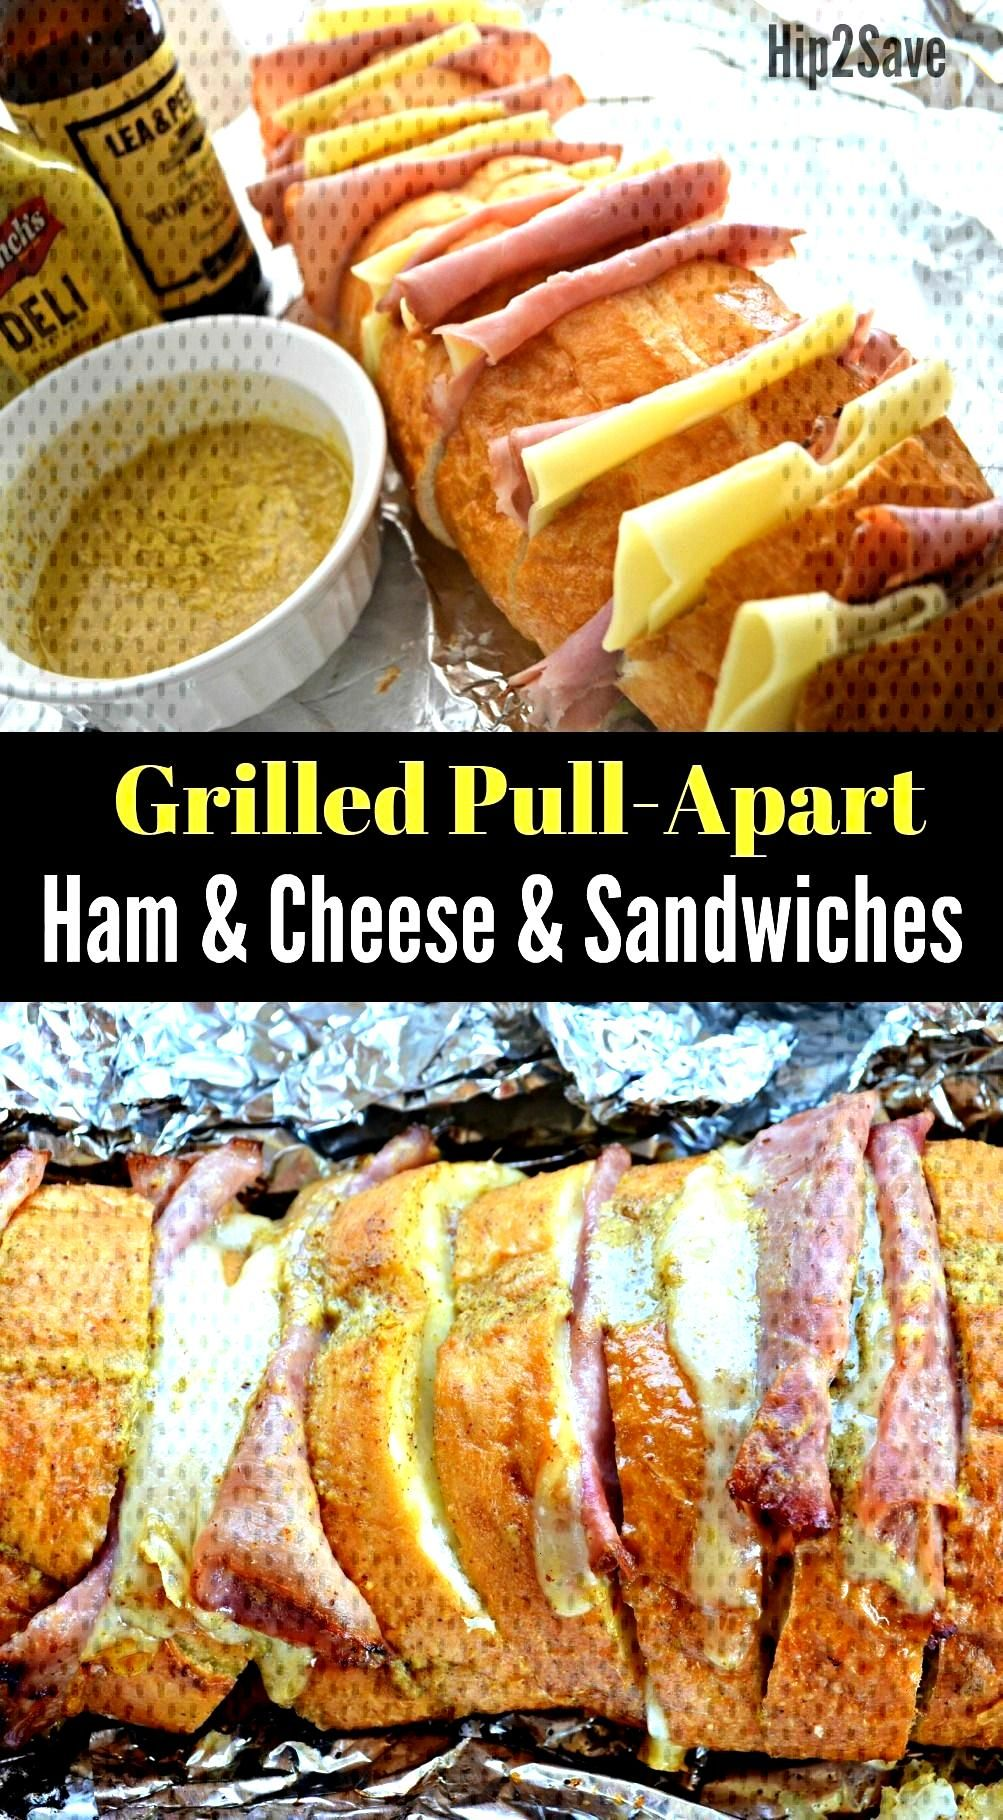 Grilled Ham amp Cheese Pull-Apart Sandwiches , Grilled Ham amp Cheese Pull-Apart Sandwiches ,